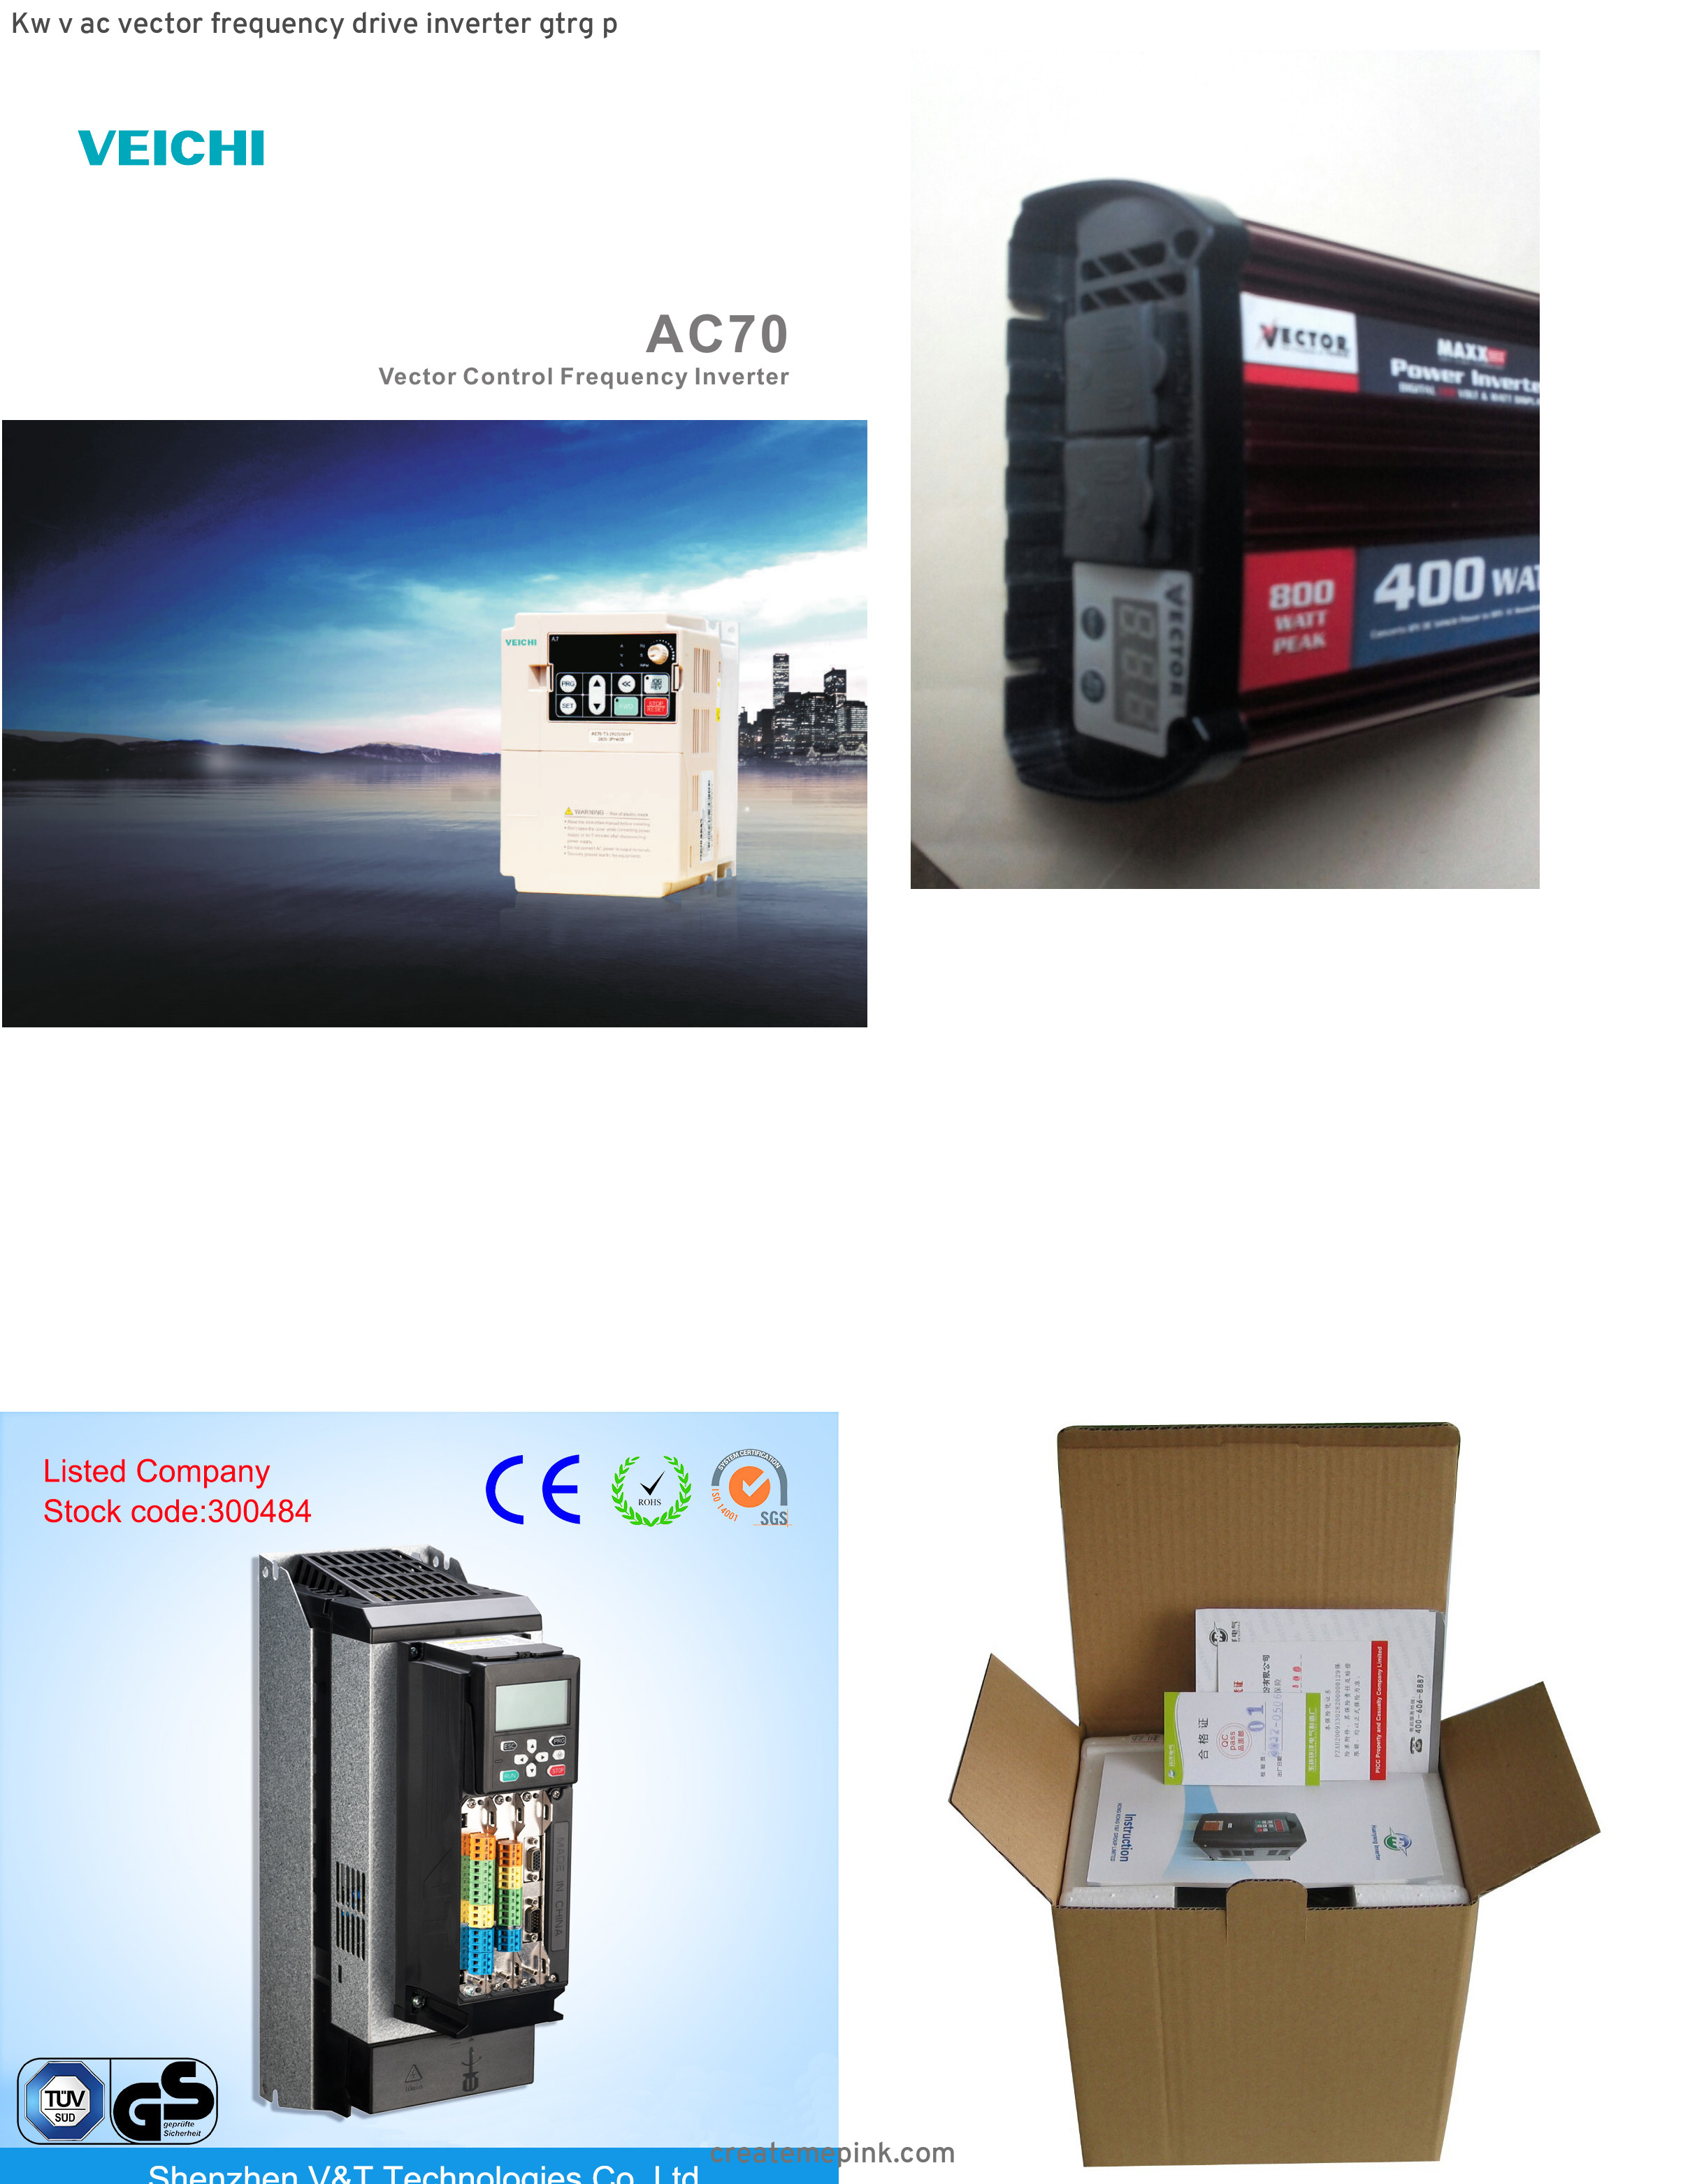 Vector Inverter 400: Kw V Ac Vector Frequency Drive Inverter Gtrg P